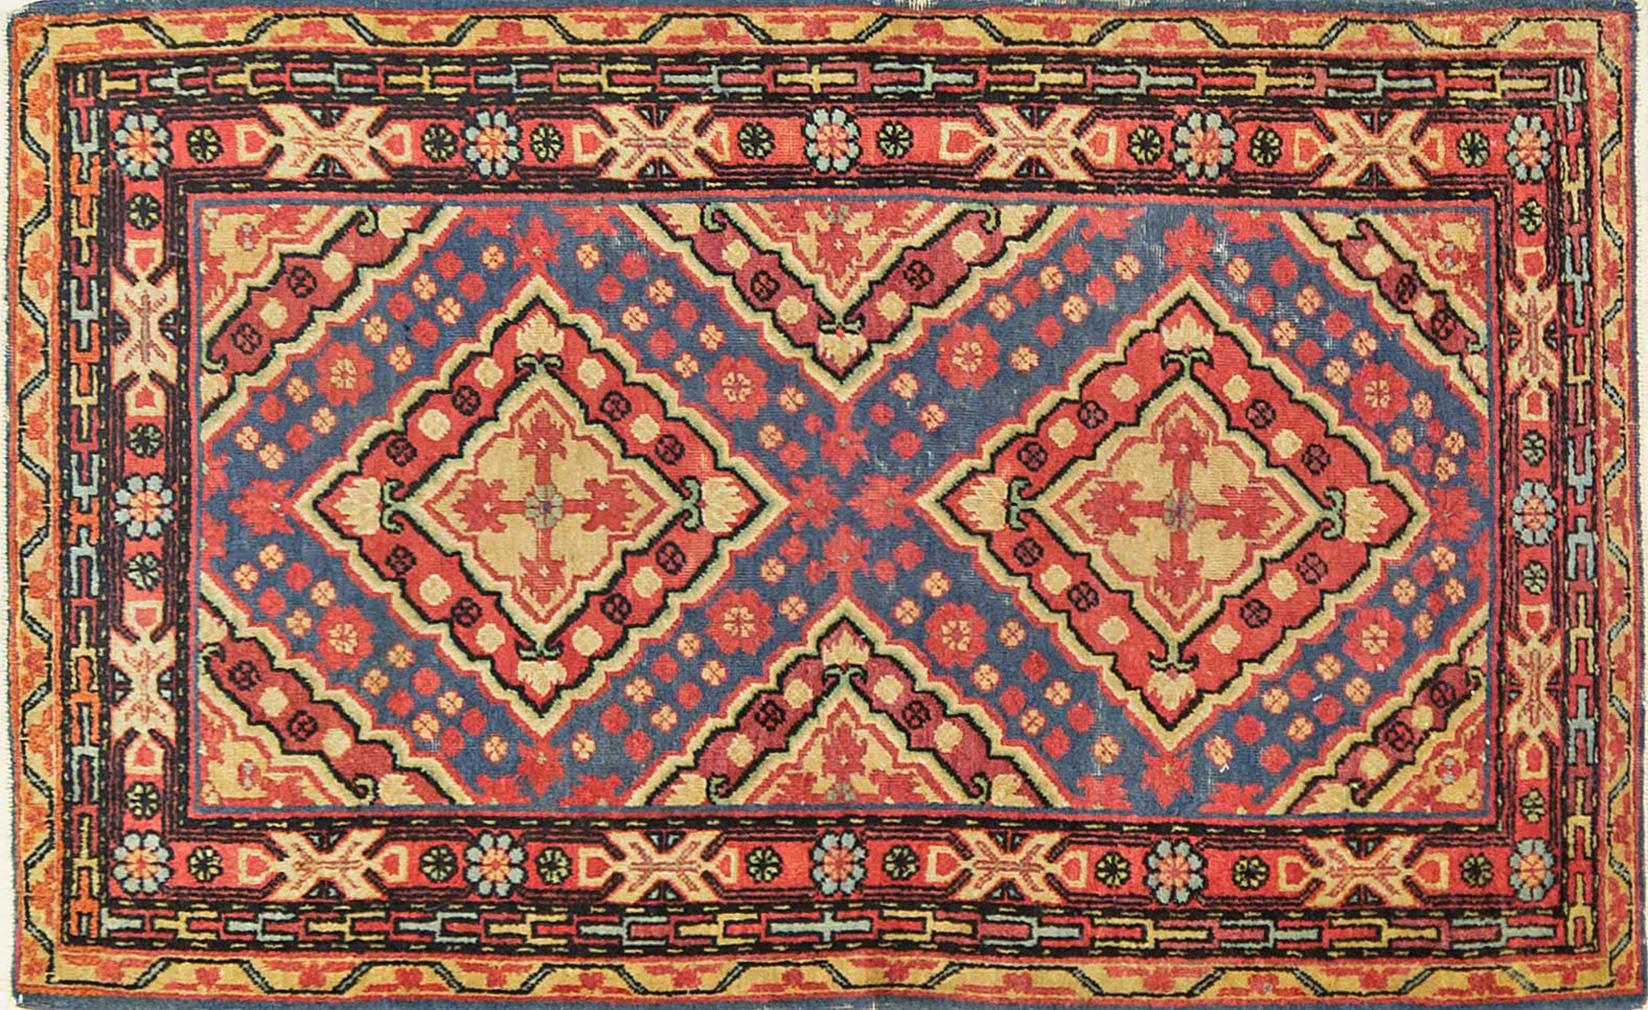 A Persian Hand Knotted Hamadan Rug, 136 x 191